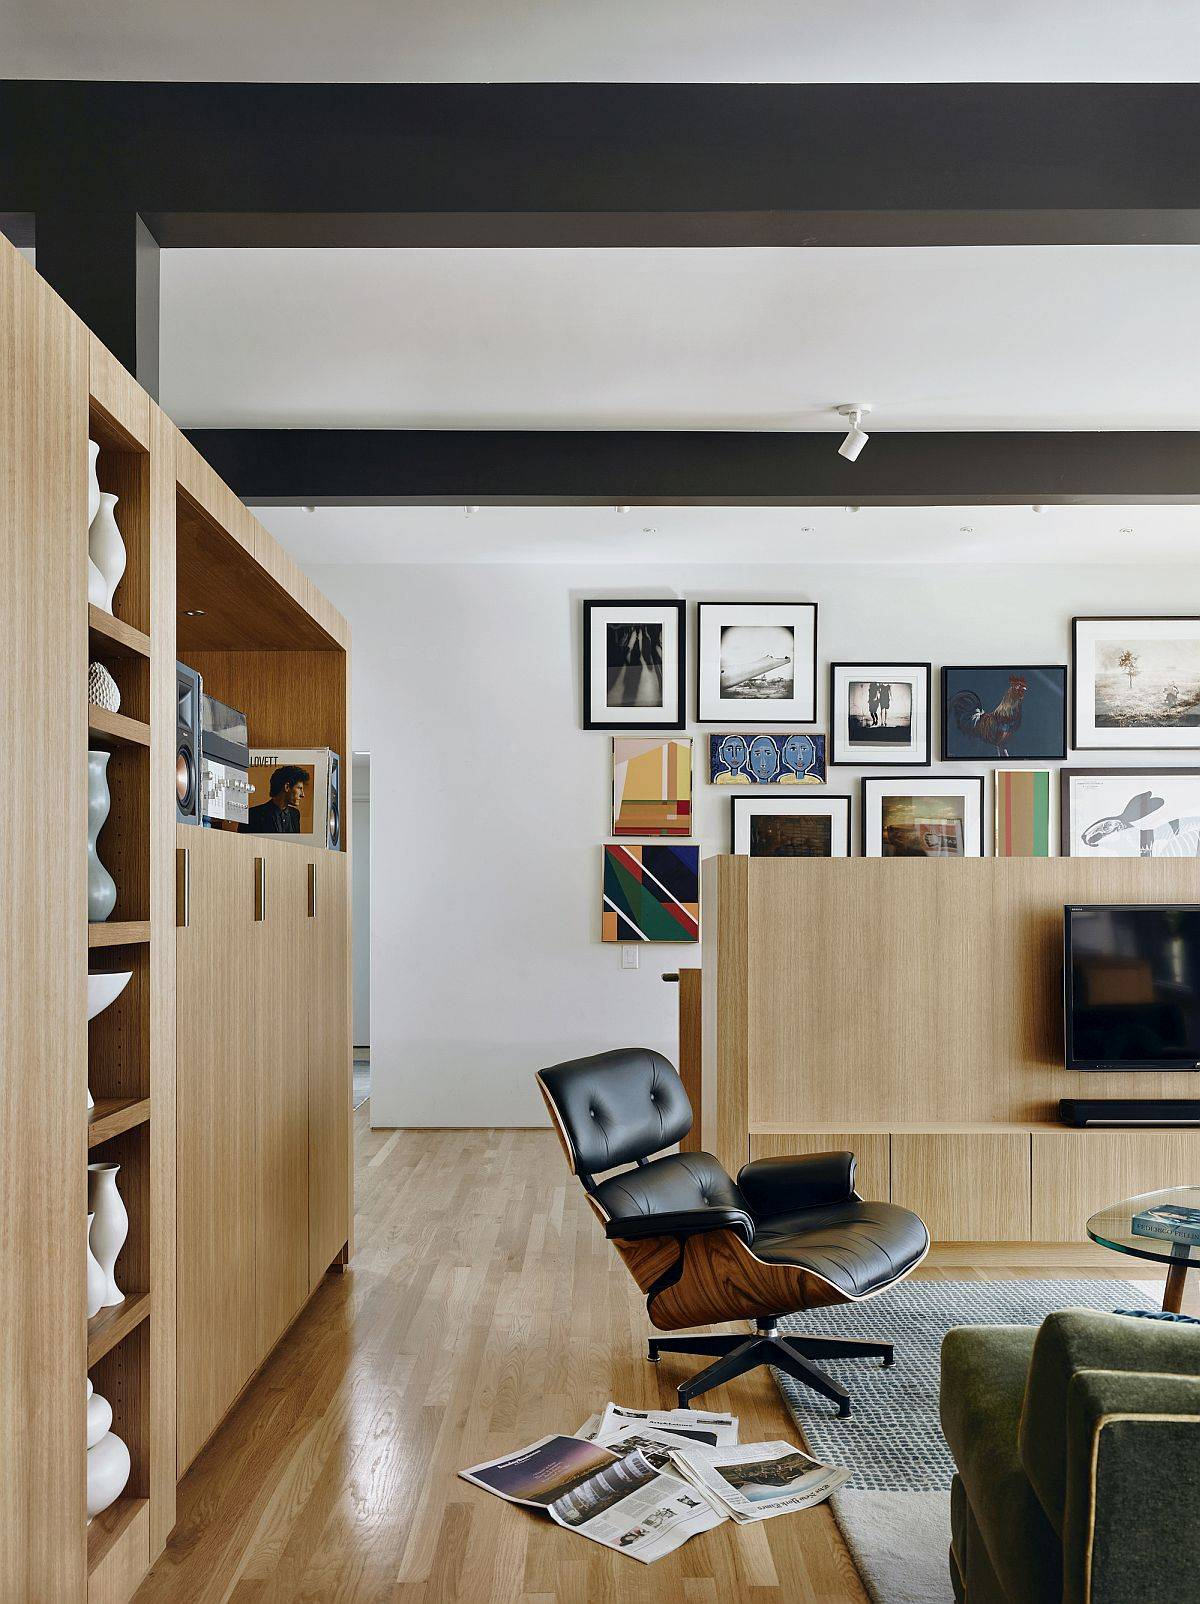 Fabulous-new-seven-foot-high-L-shaped-white-oak-cabinet-delineates-the-public-spaces-from-the-private-ones-63725